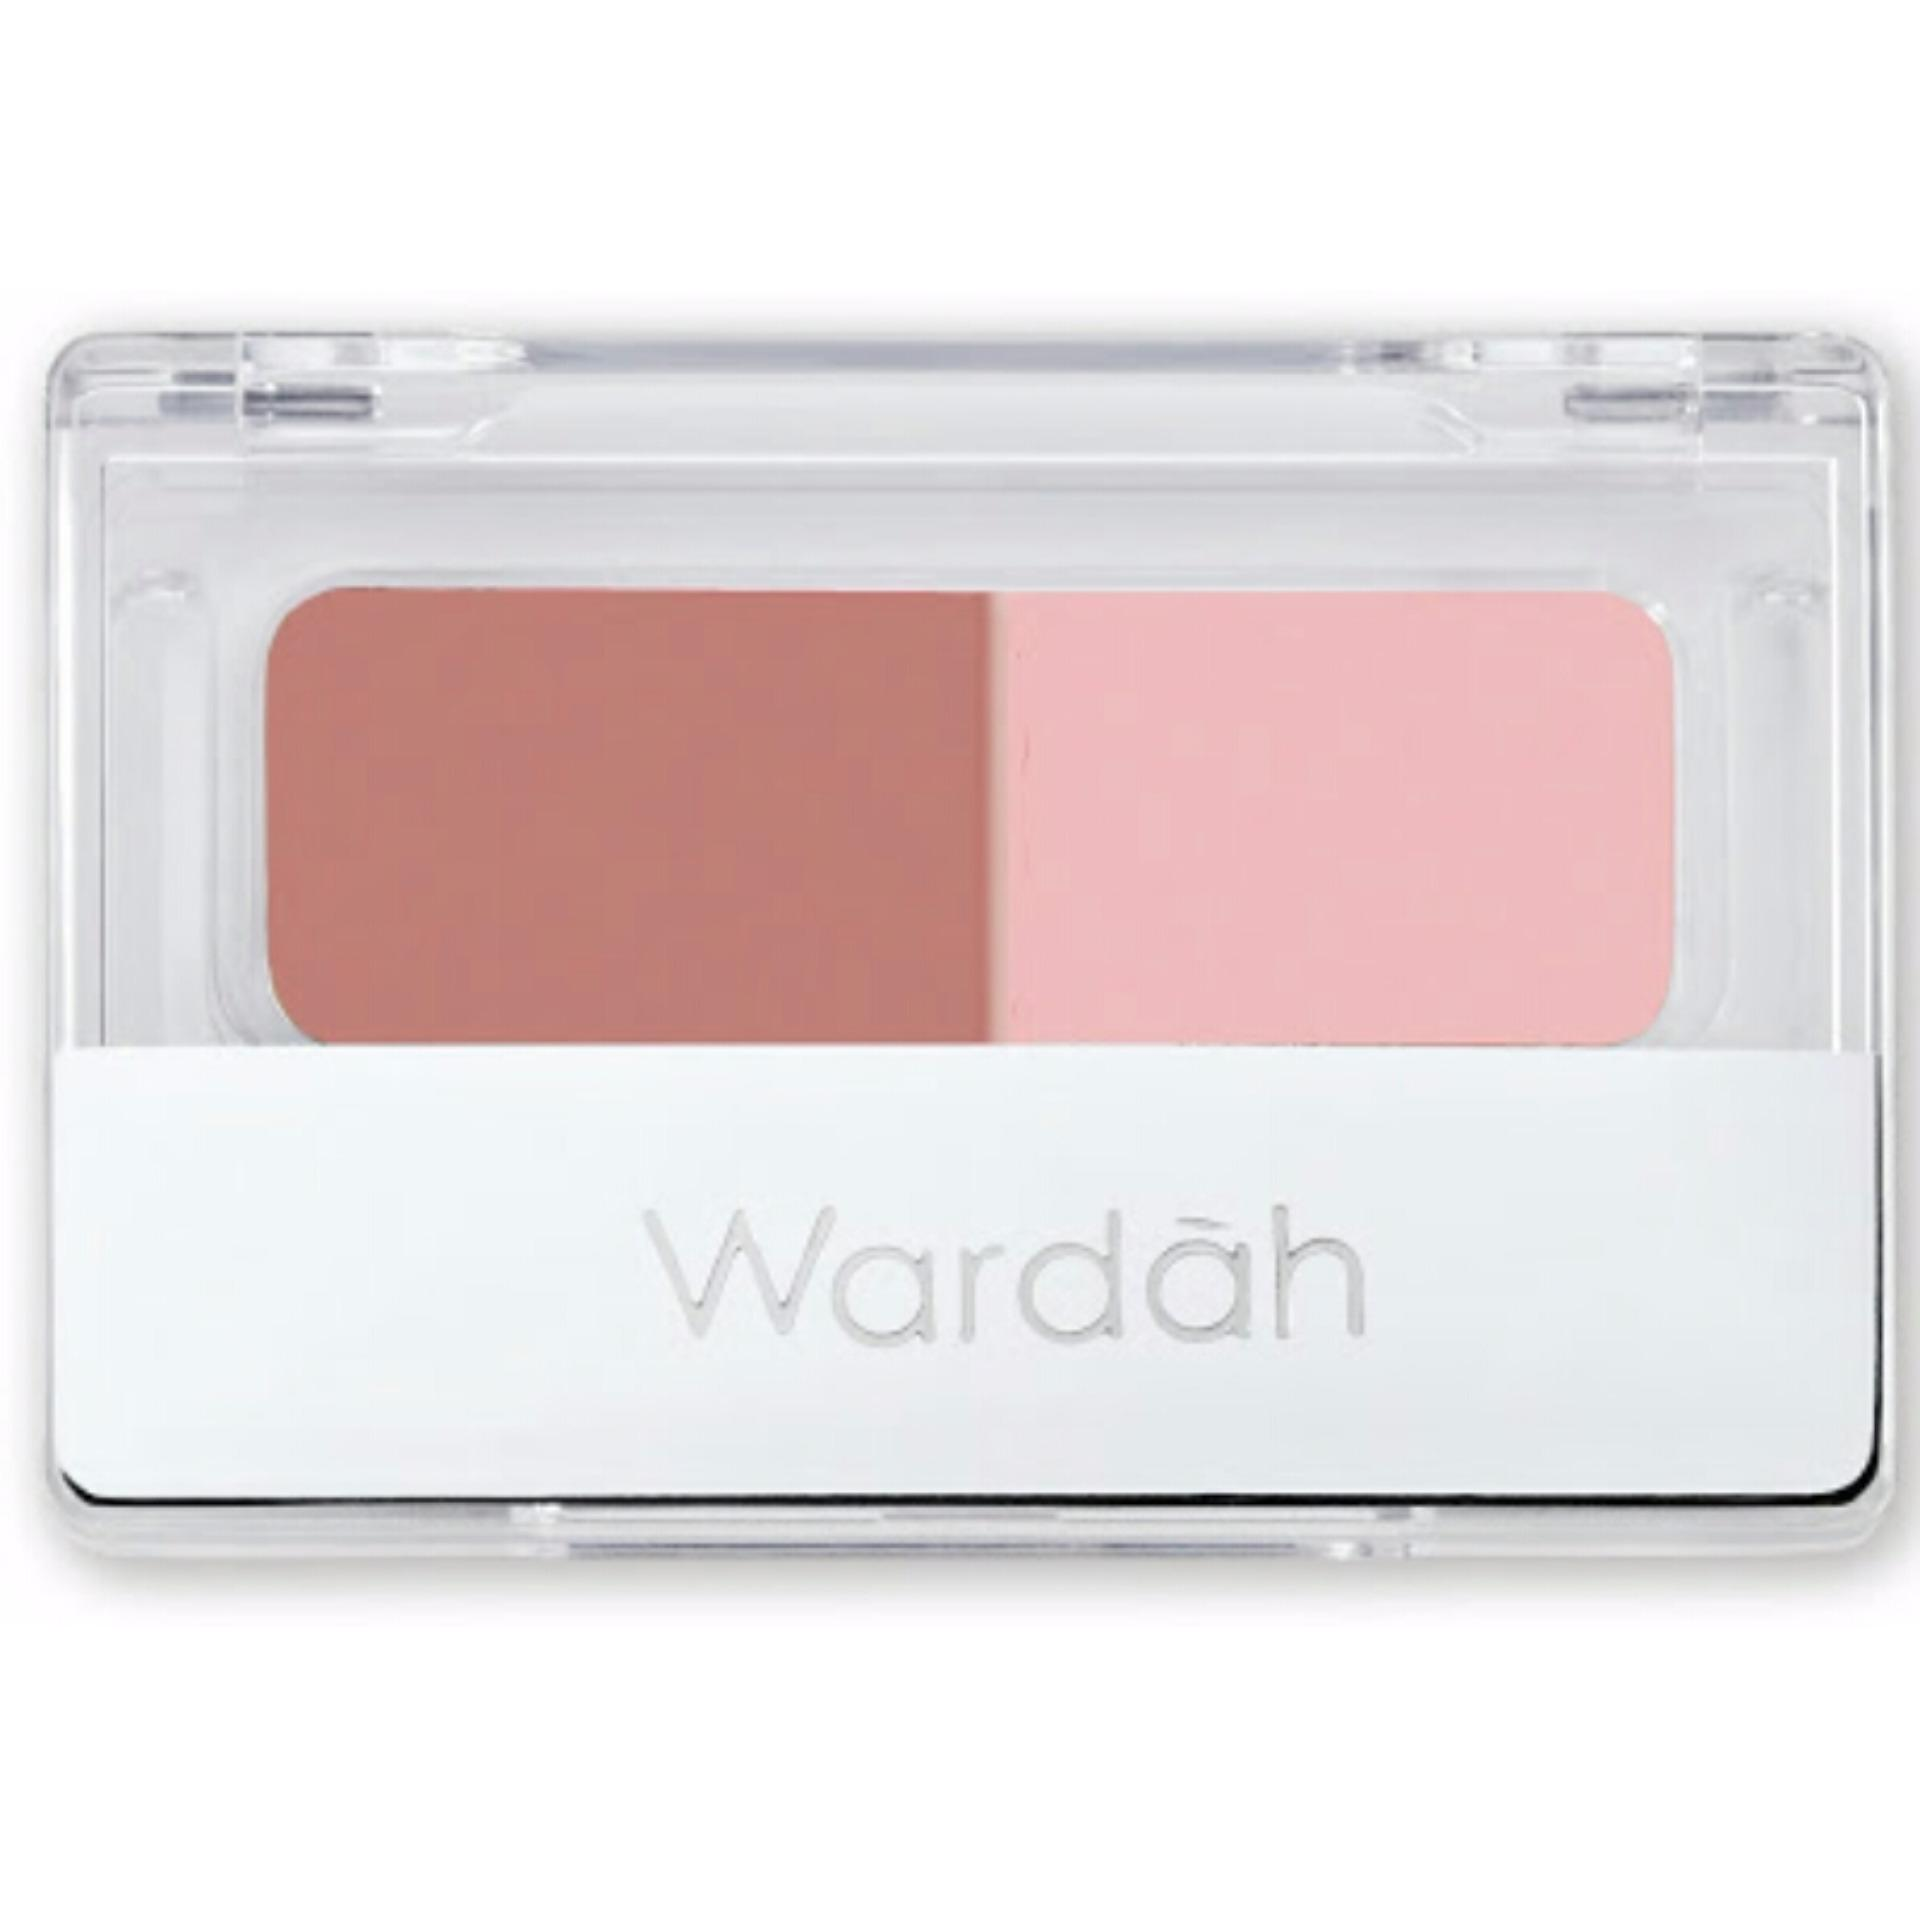 Bioaqua Chic Trendy Soft Rose Blush On Kehebatan Original 100 Dan Harga Update Wardah A